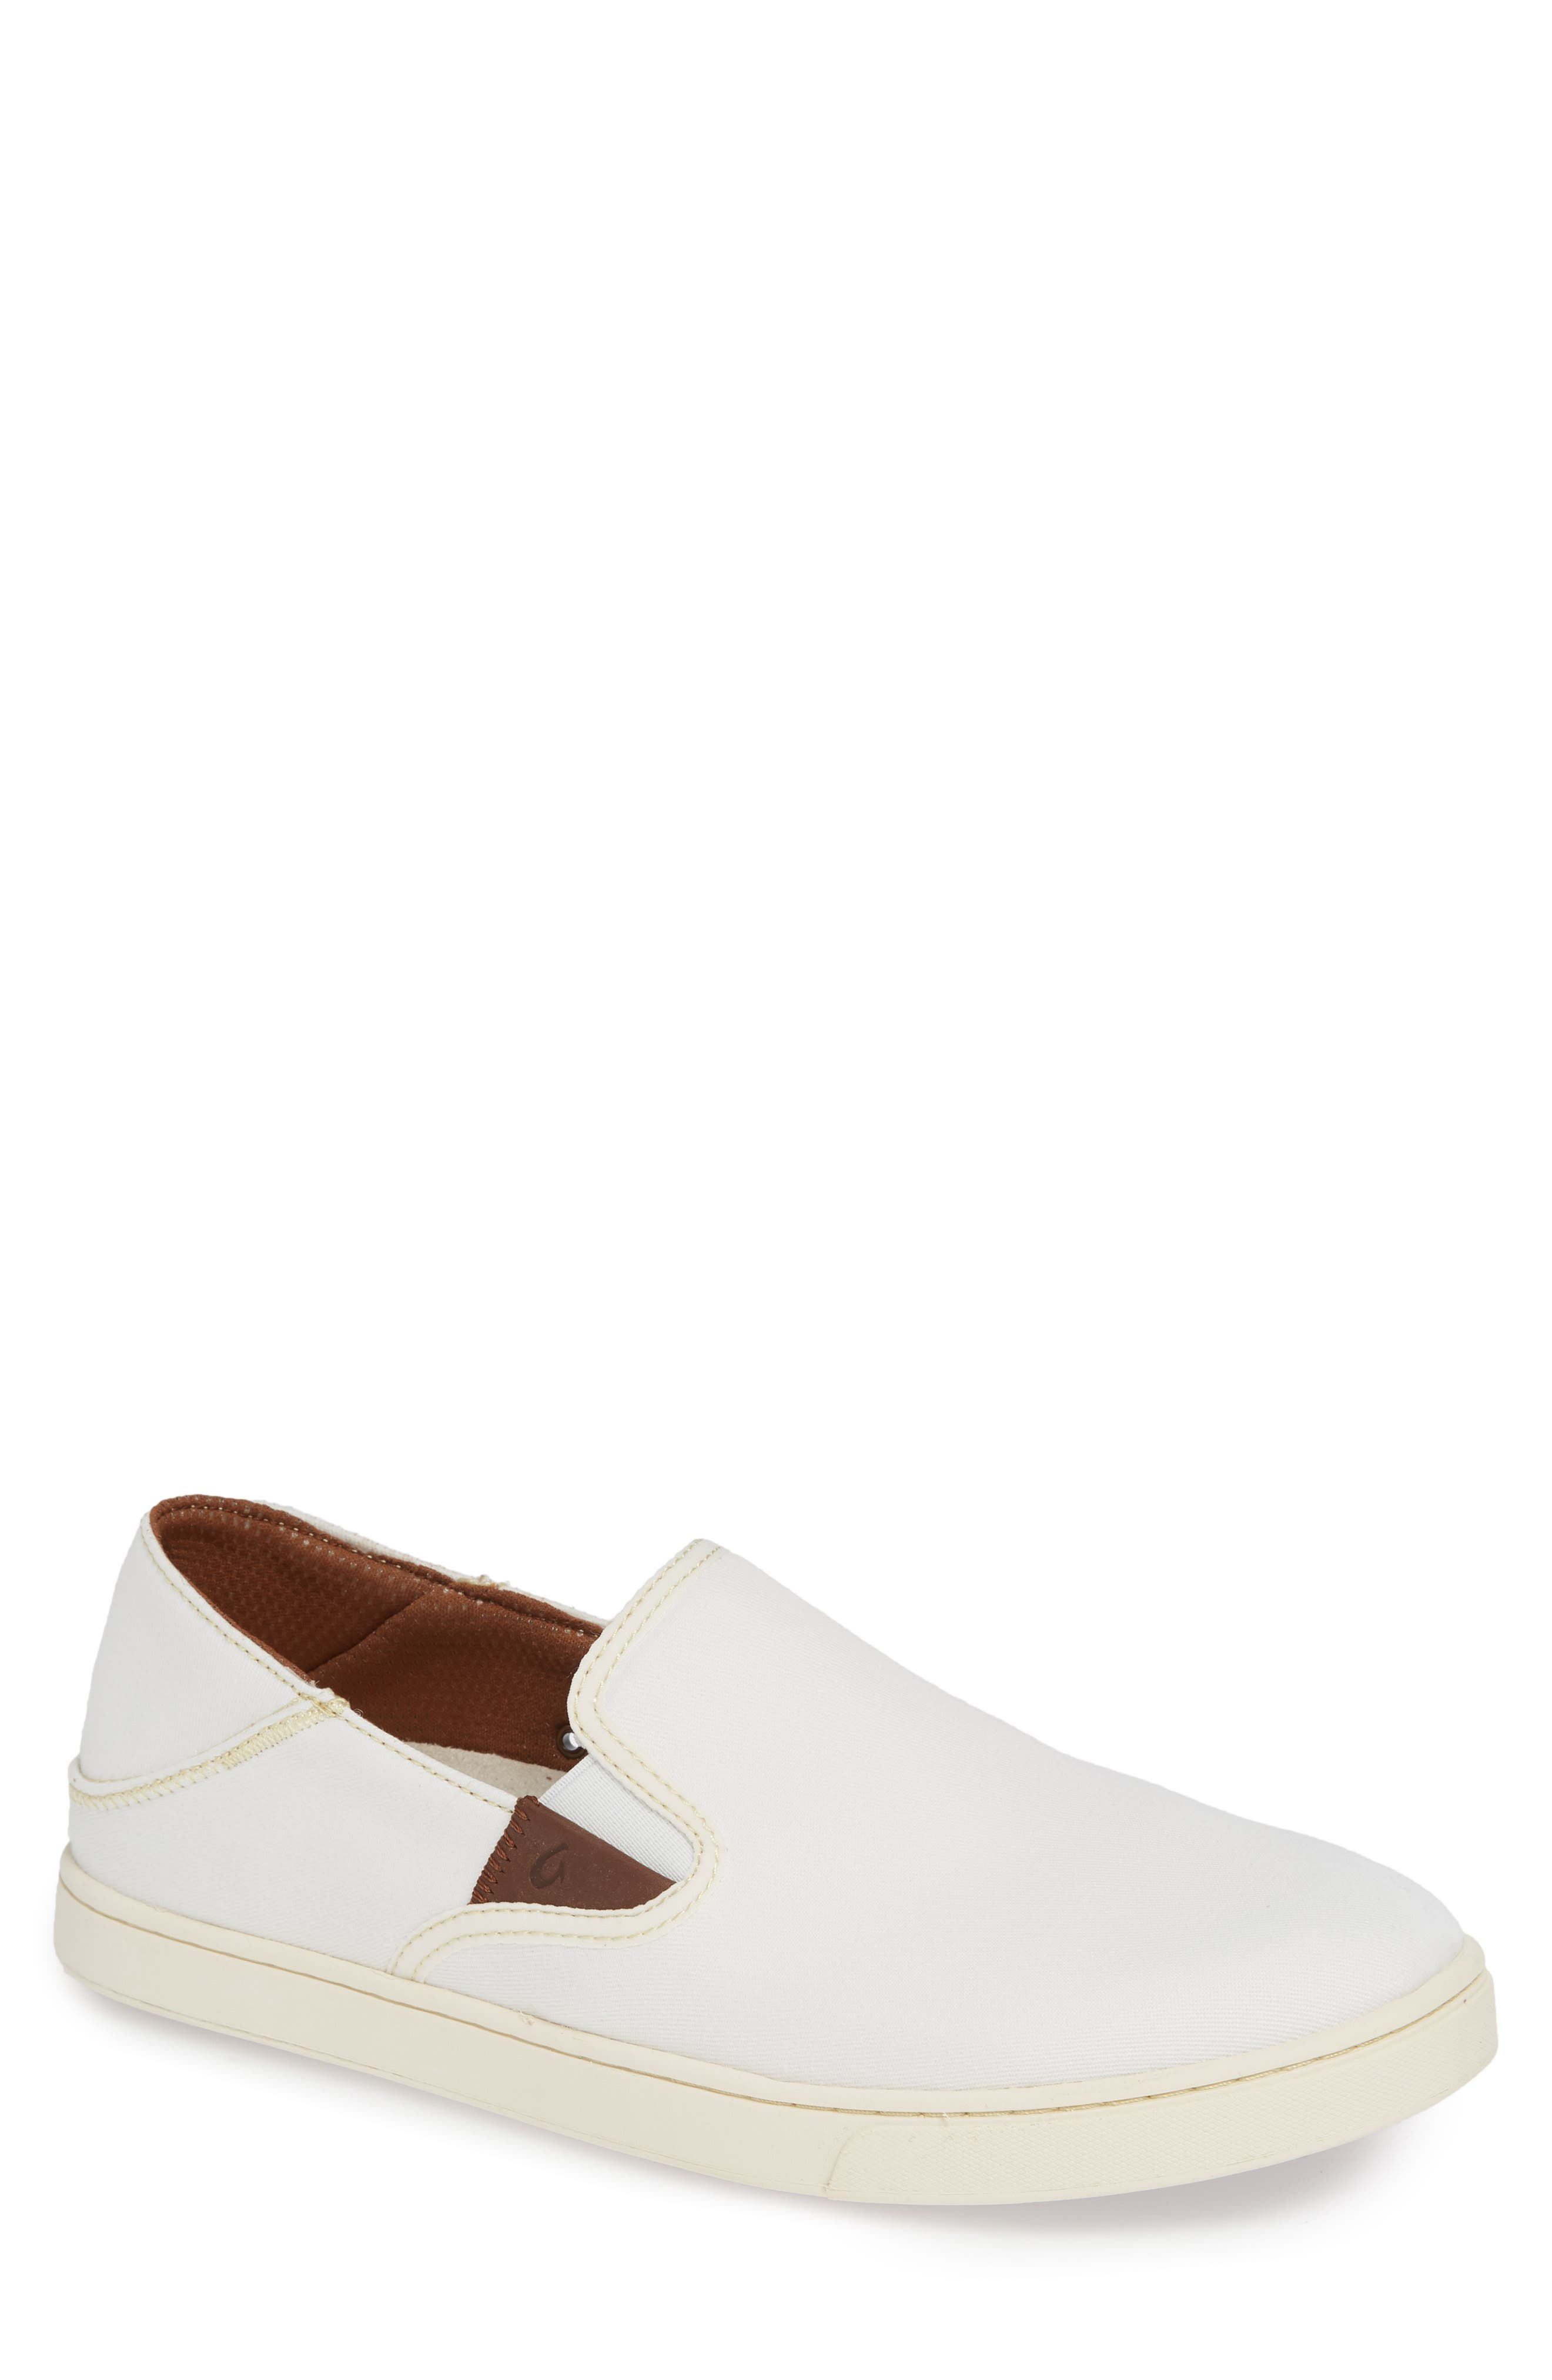 Kahu Collapsible Slip-On Sneaker,                             Main thumbnail 1, color,                             OFF WHITE/ OFF WHITE TEXTILE